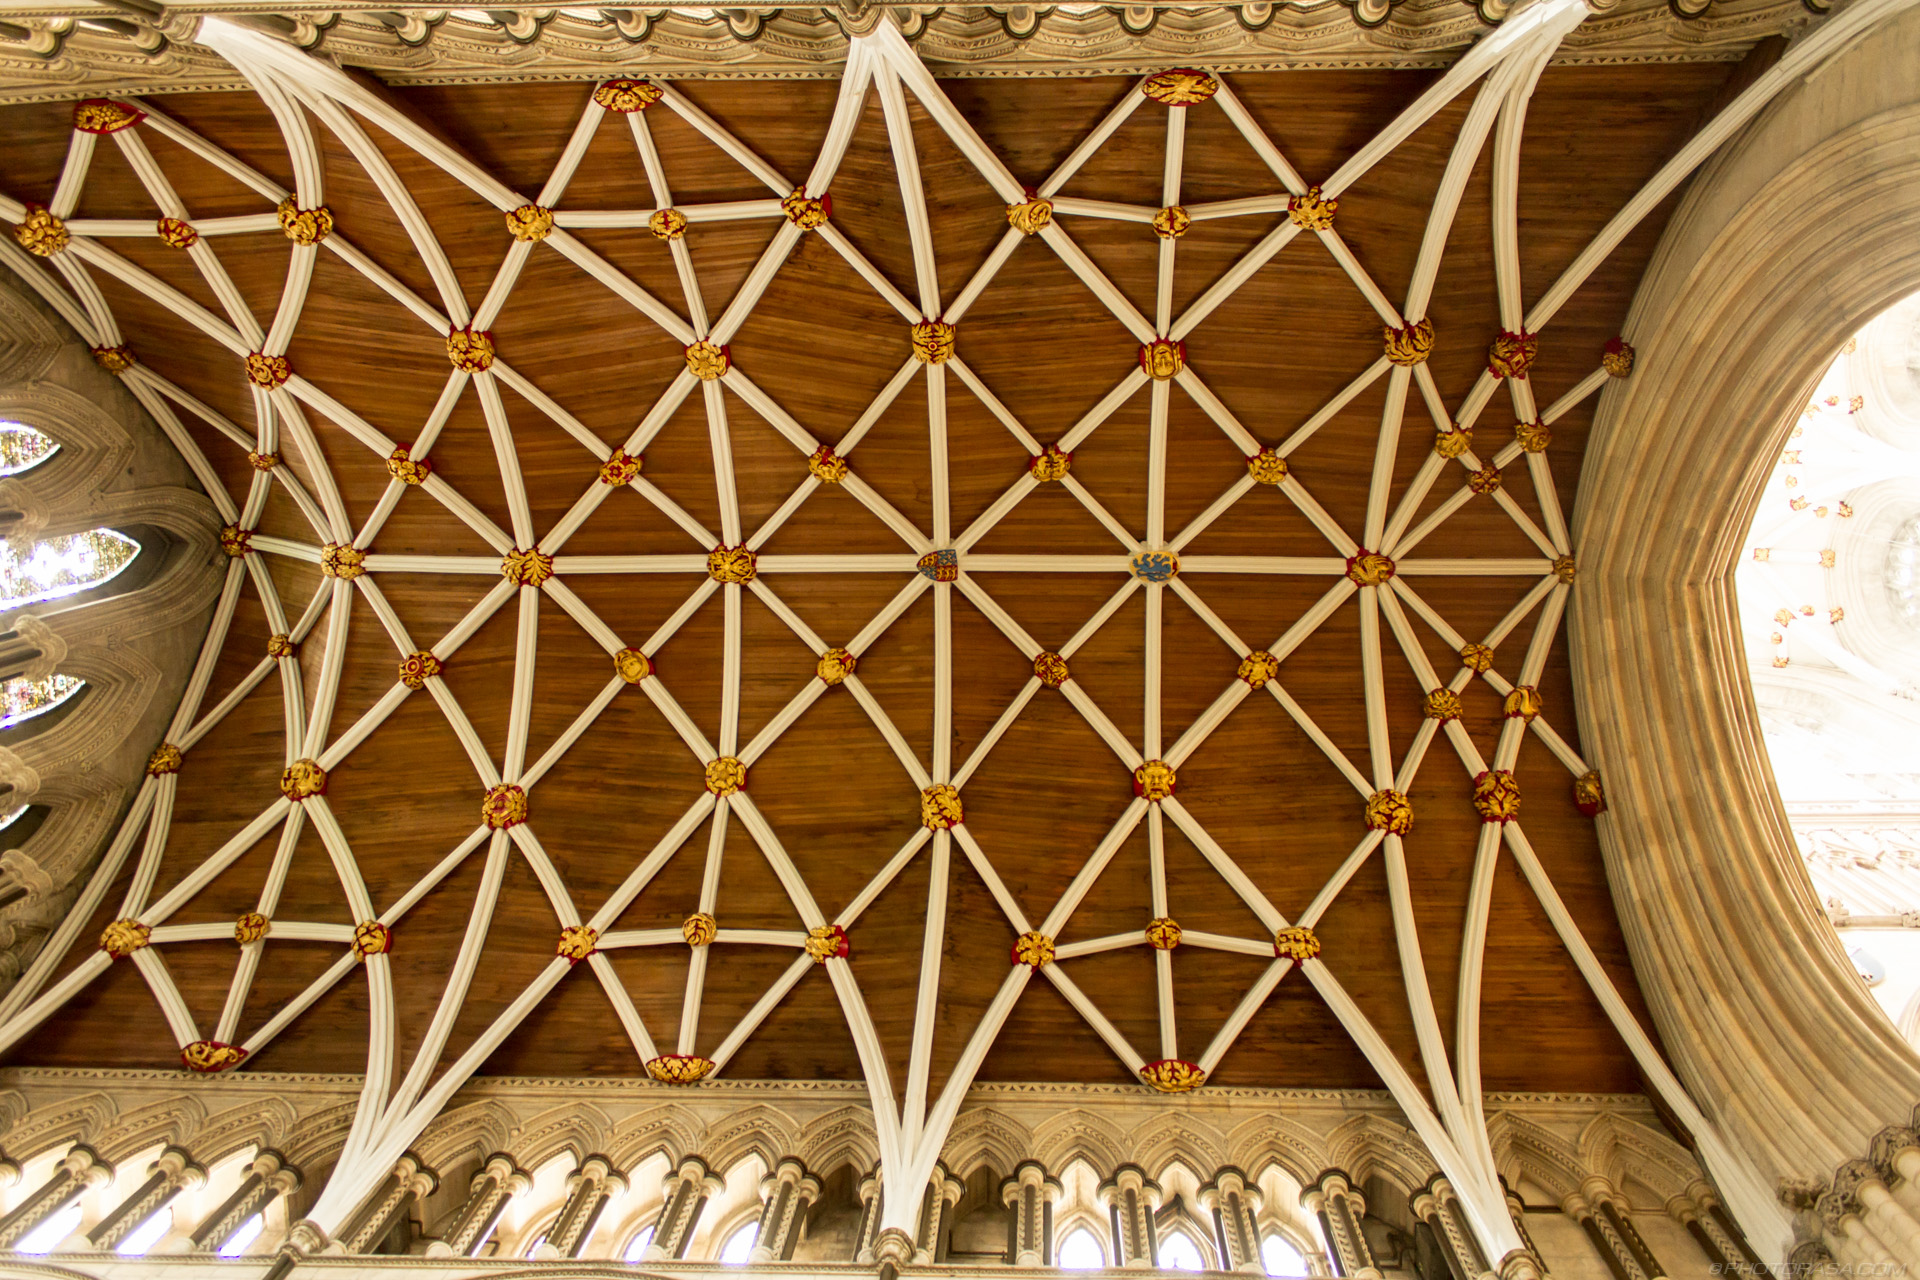 http://photorasa.com/yorkminster-cathedral/vaulted-wooden-cathedral-ceiling/